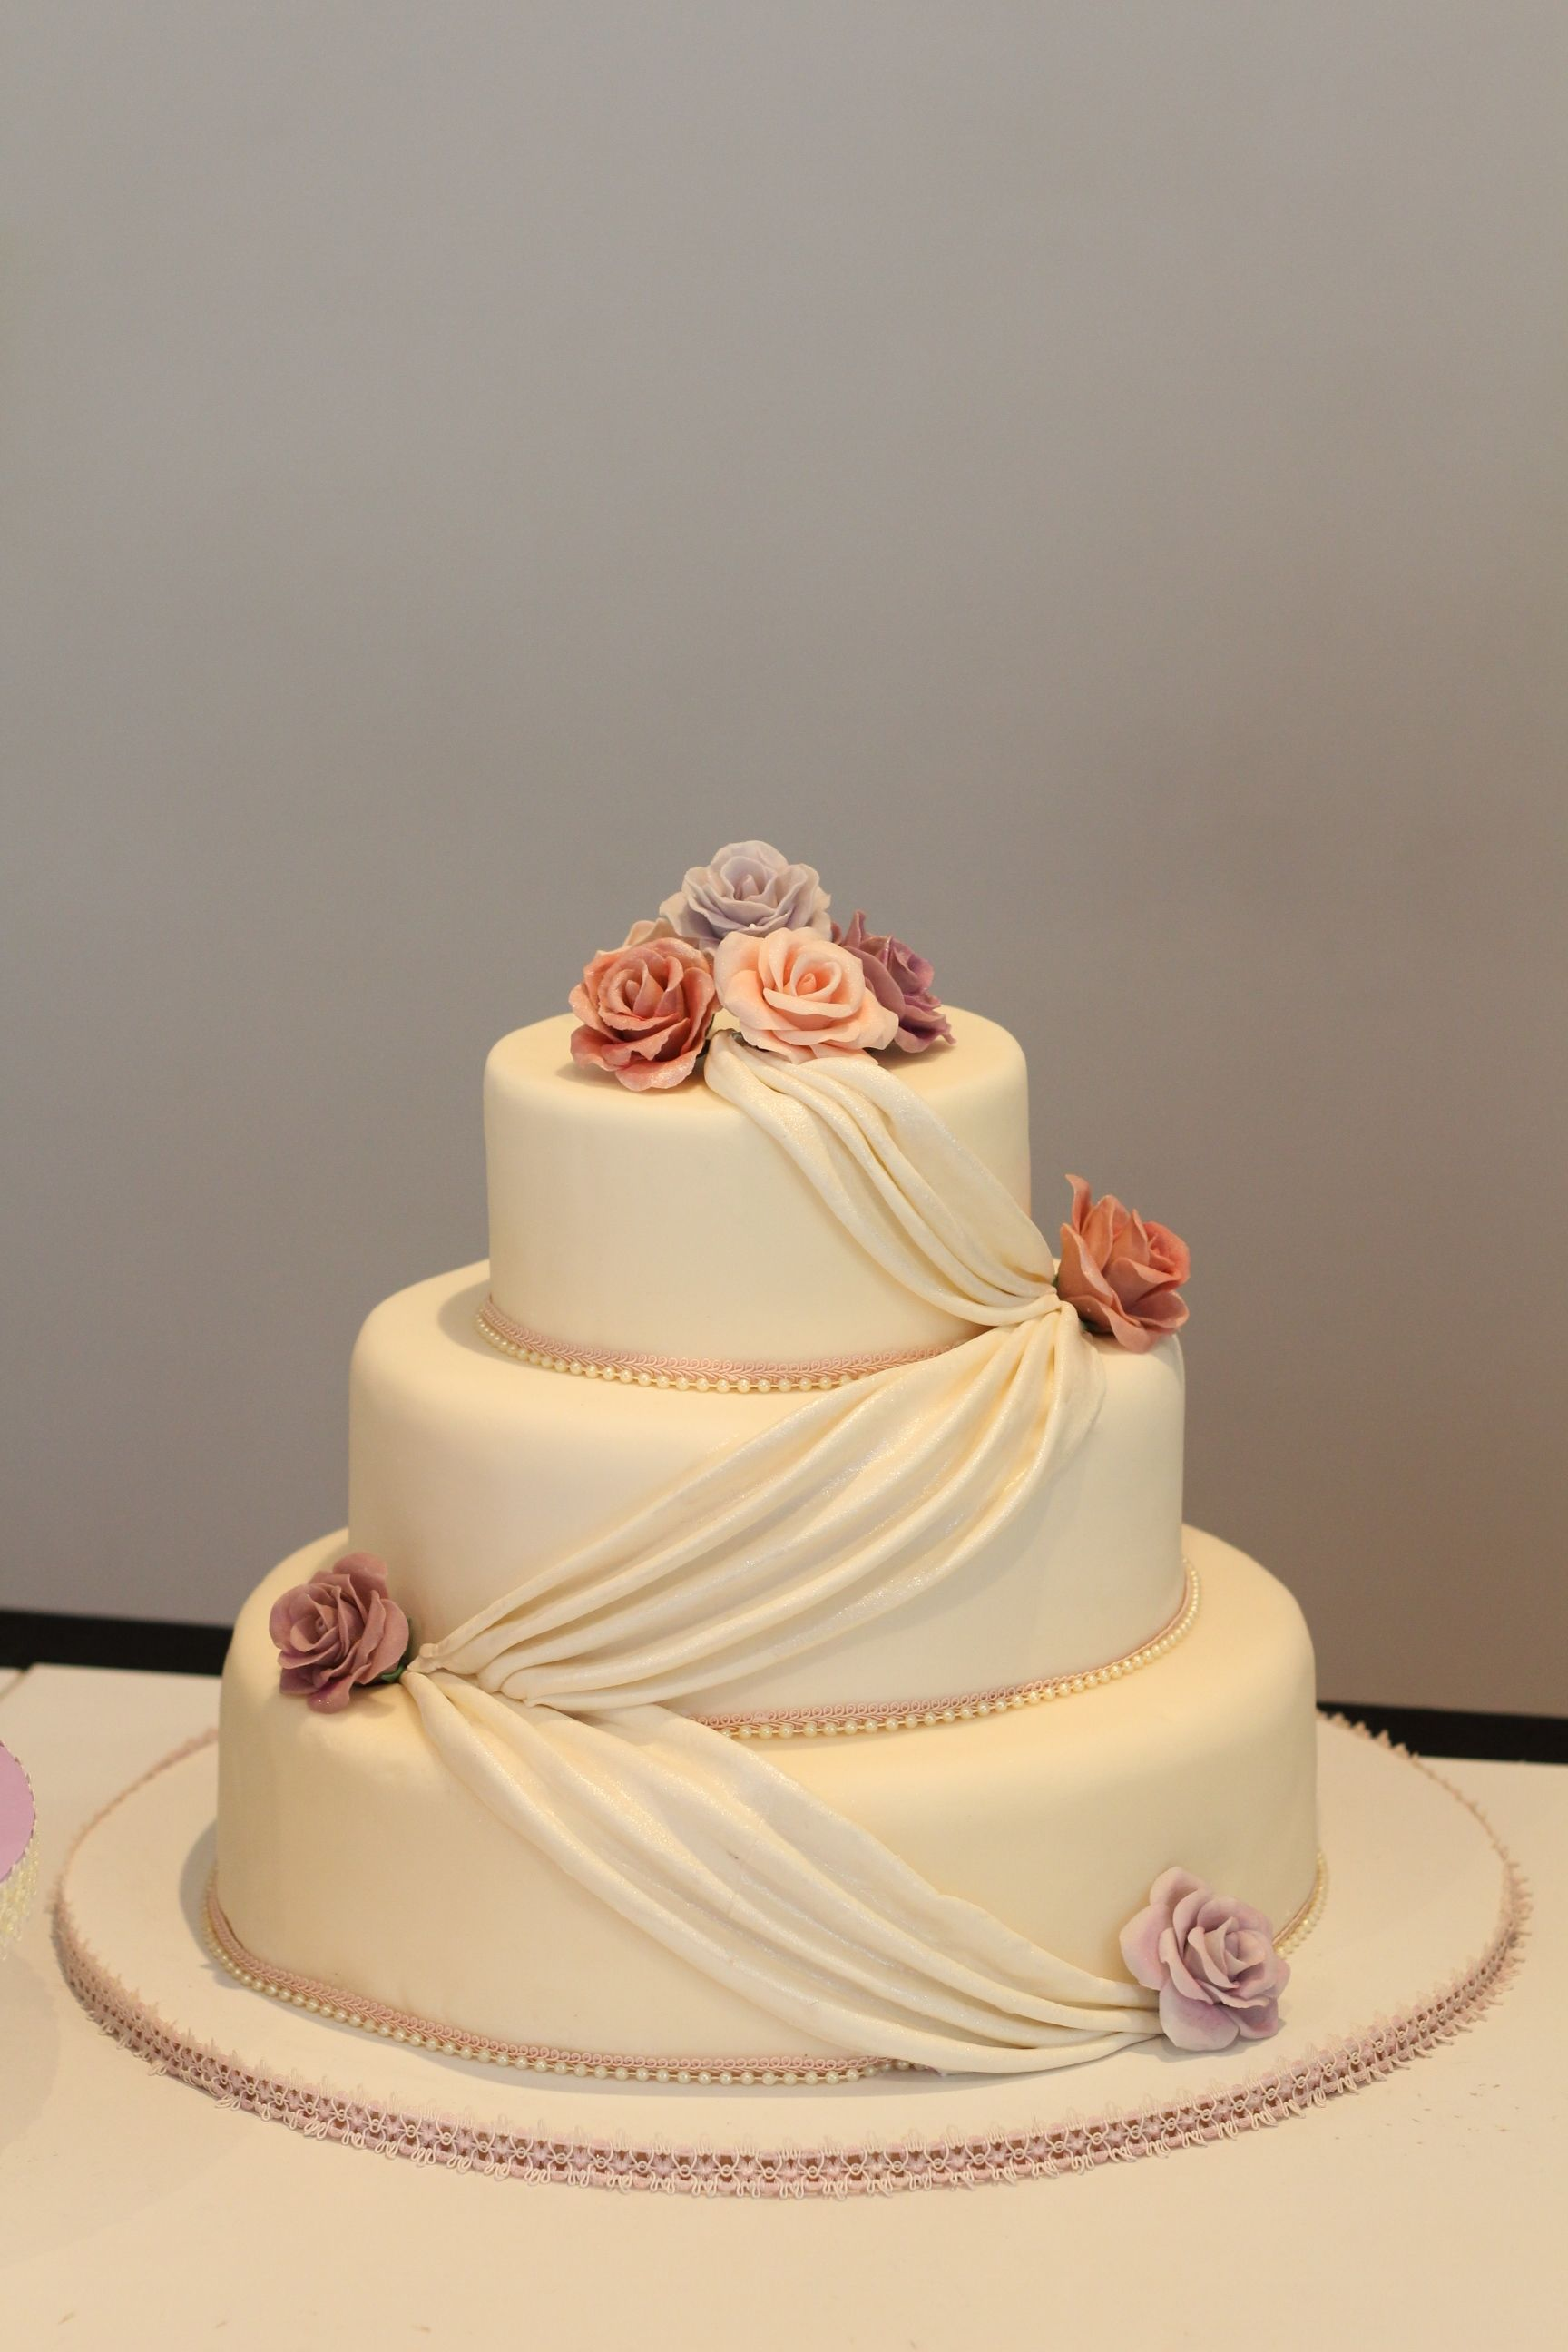 wedding cakes los angeles prices%0A Elegant wedding cakes       Santiago Los Angeles